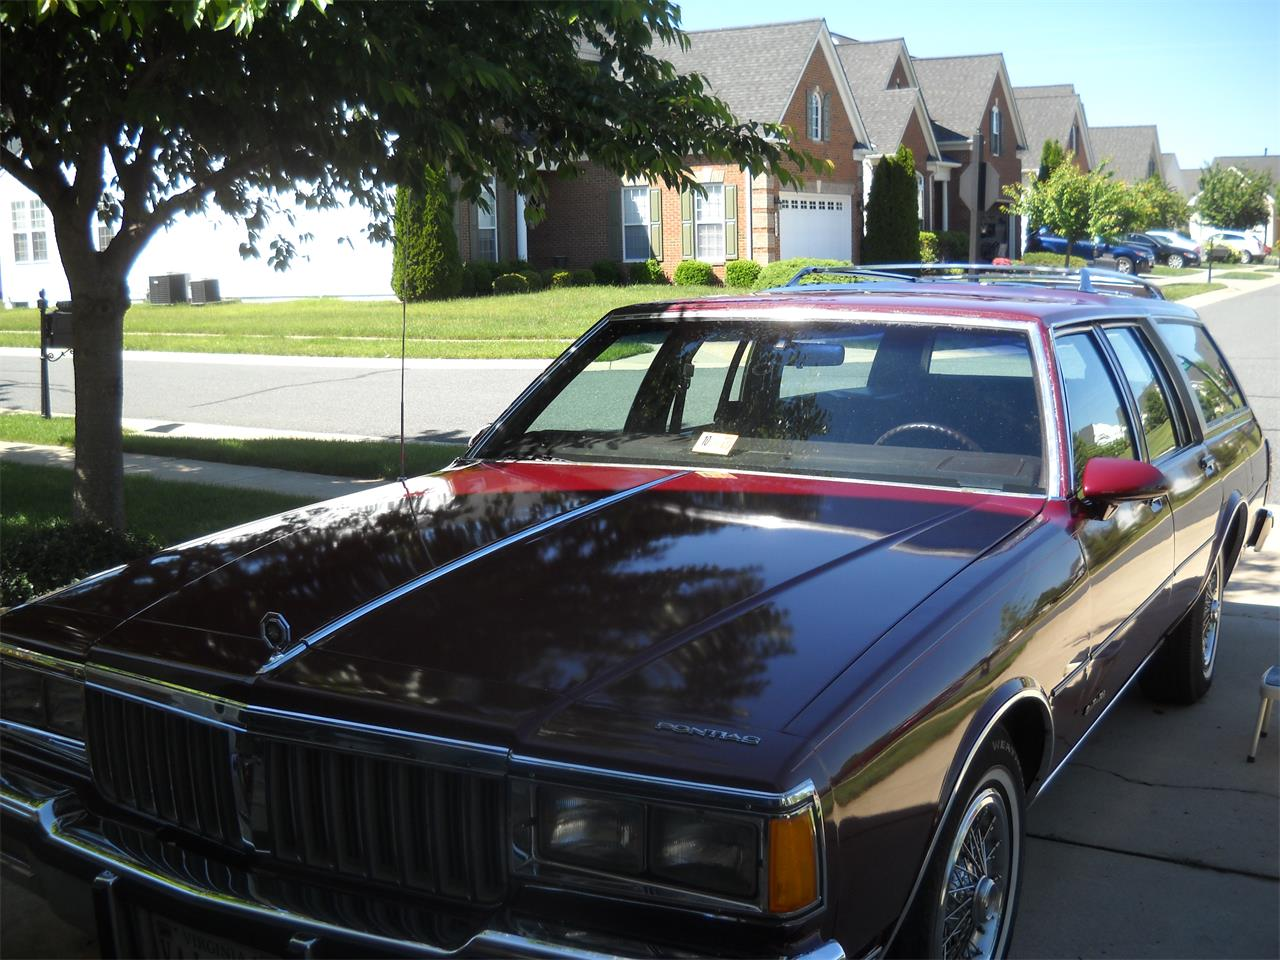 Large Picture of 1988 Pontiac Safari located in Virginia - $6,400.00 Offered by a Private Seller - L4G0